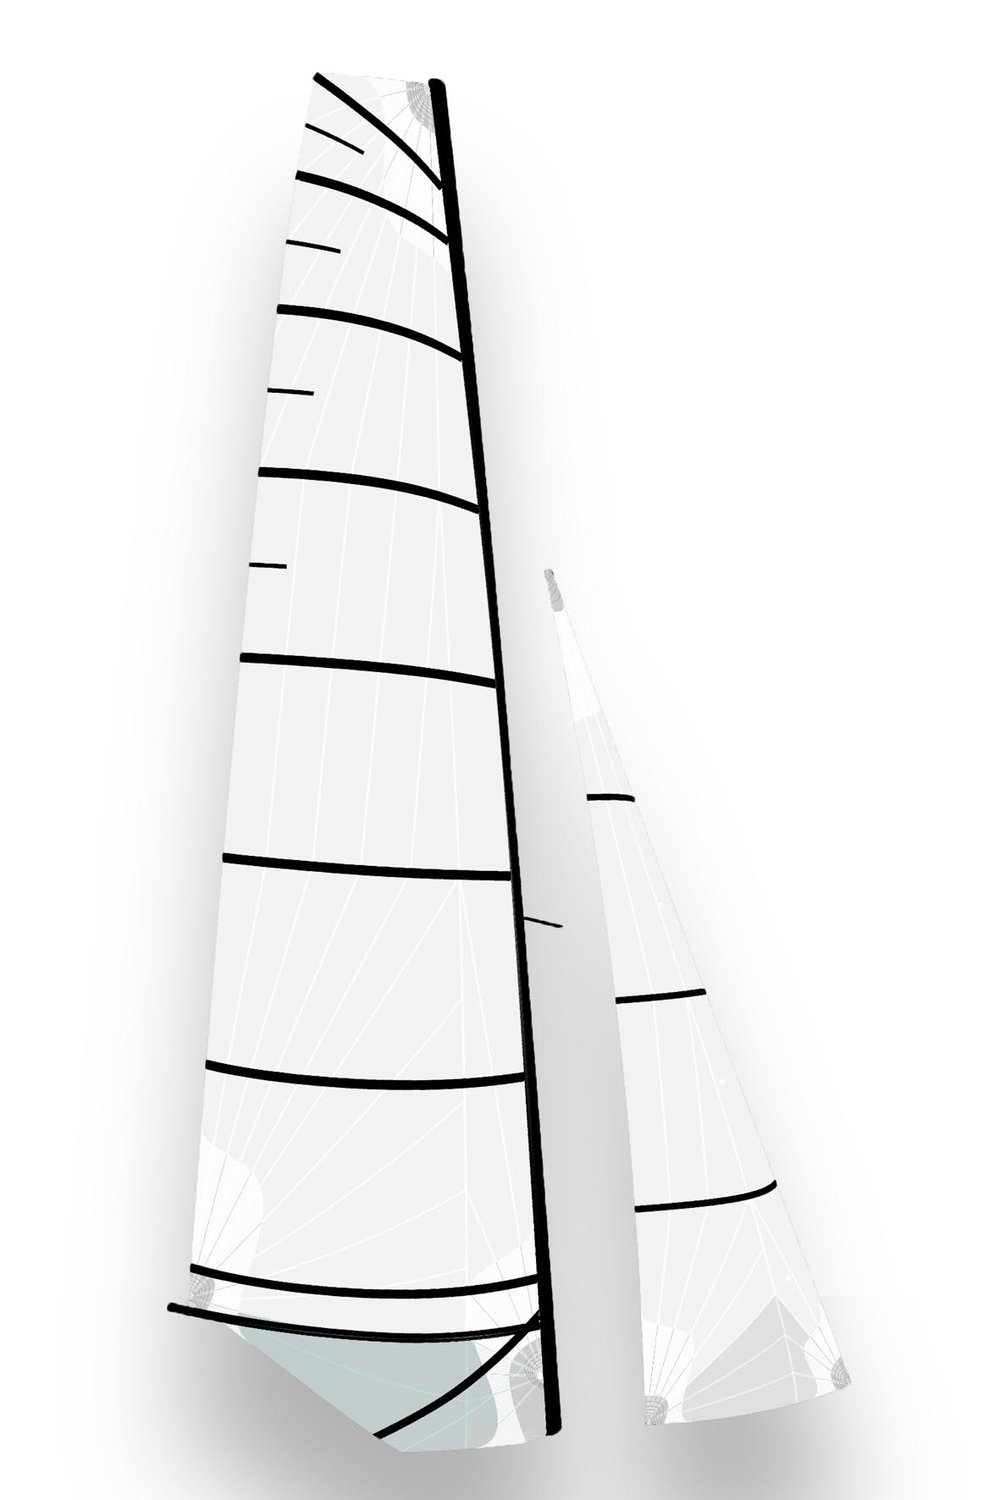 F18 - F18 DS MainsailRadial cut / Polyester laminate9 battensPrice : 2150 €*Aluminium boom : 560 €*F18 jibRadial cut / Polyester laminate3 battensPrice : 640 €*F18 spinnakerRadial cut / Nylon or Polyester2 retrieving patchesPrice : Nylon 890 €*Polyester 1190€*